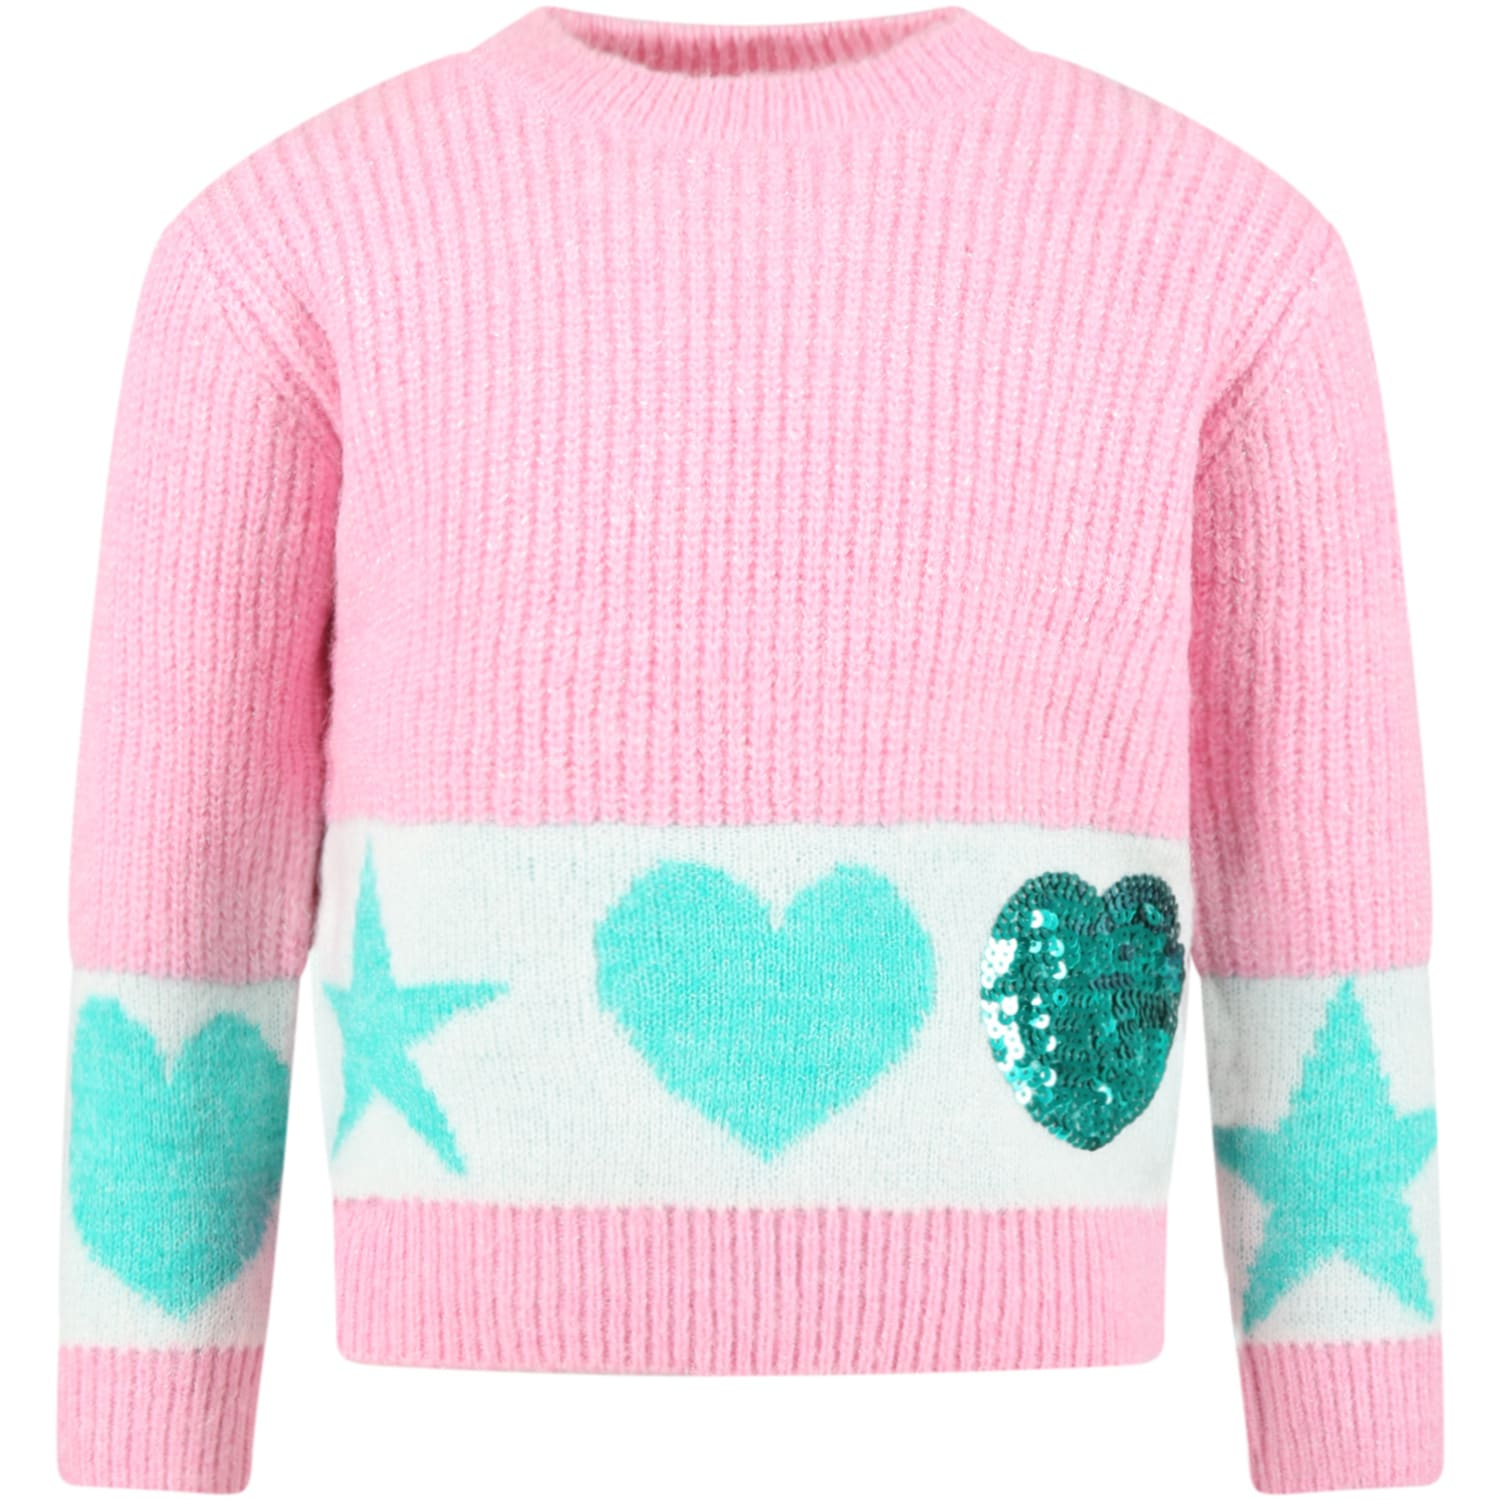 Pink Sweater For Girl With Hearts